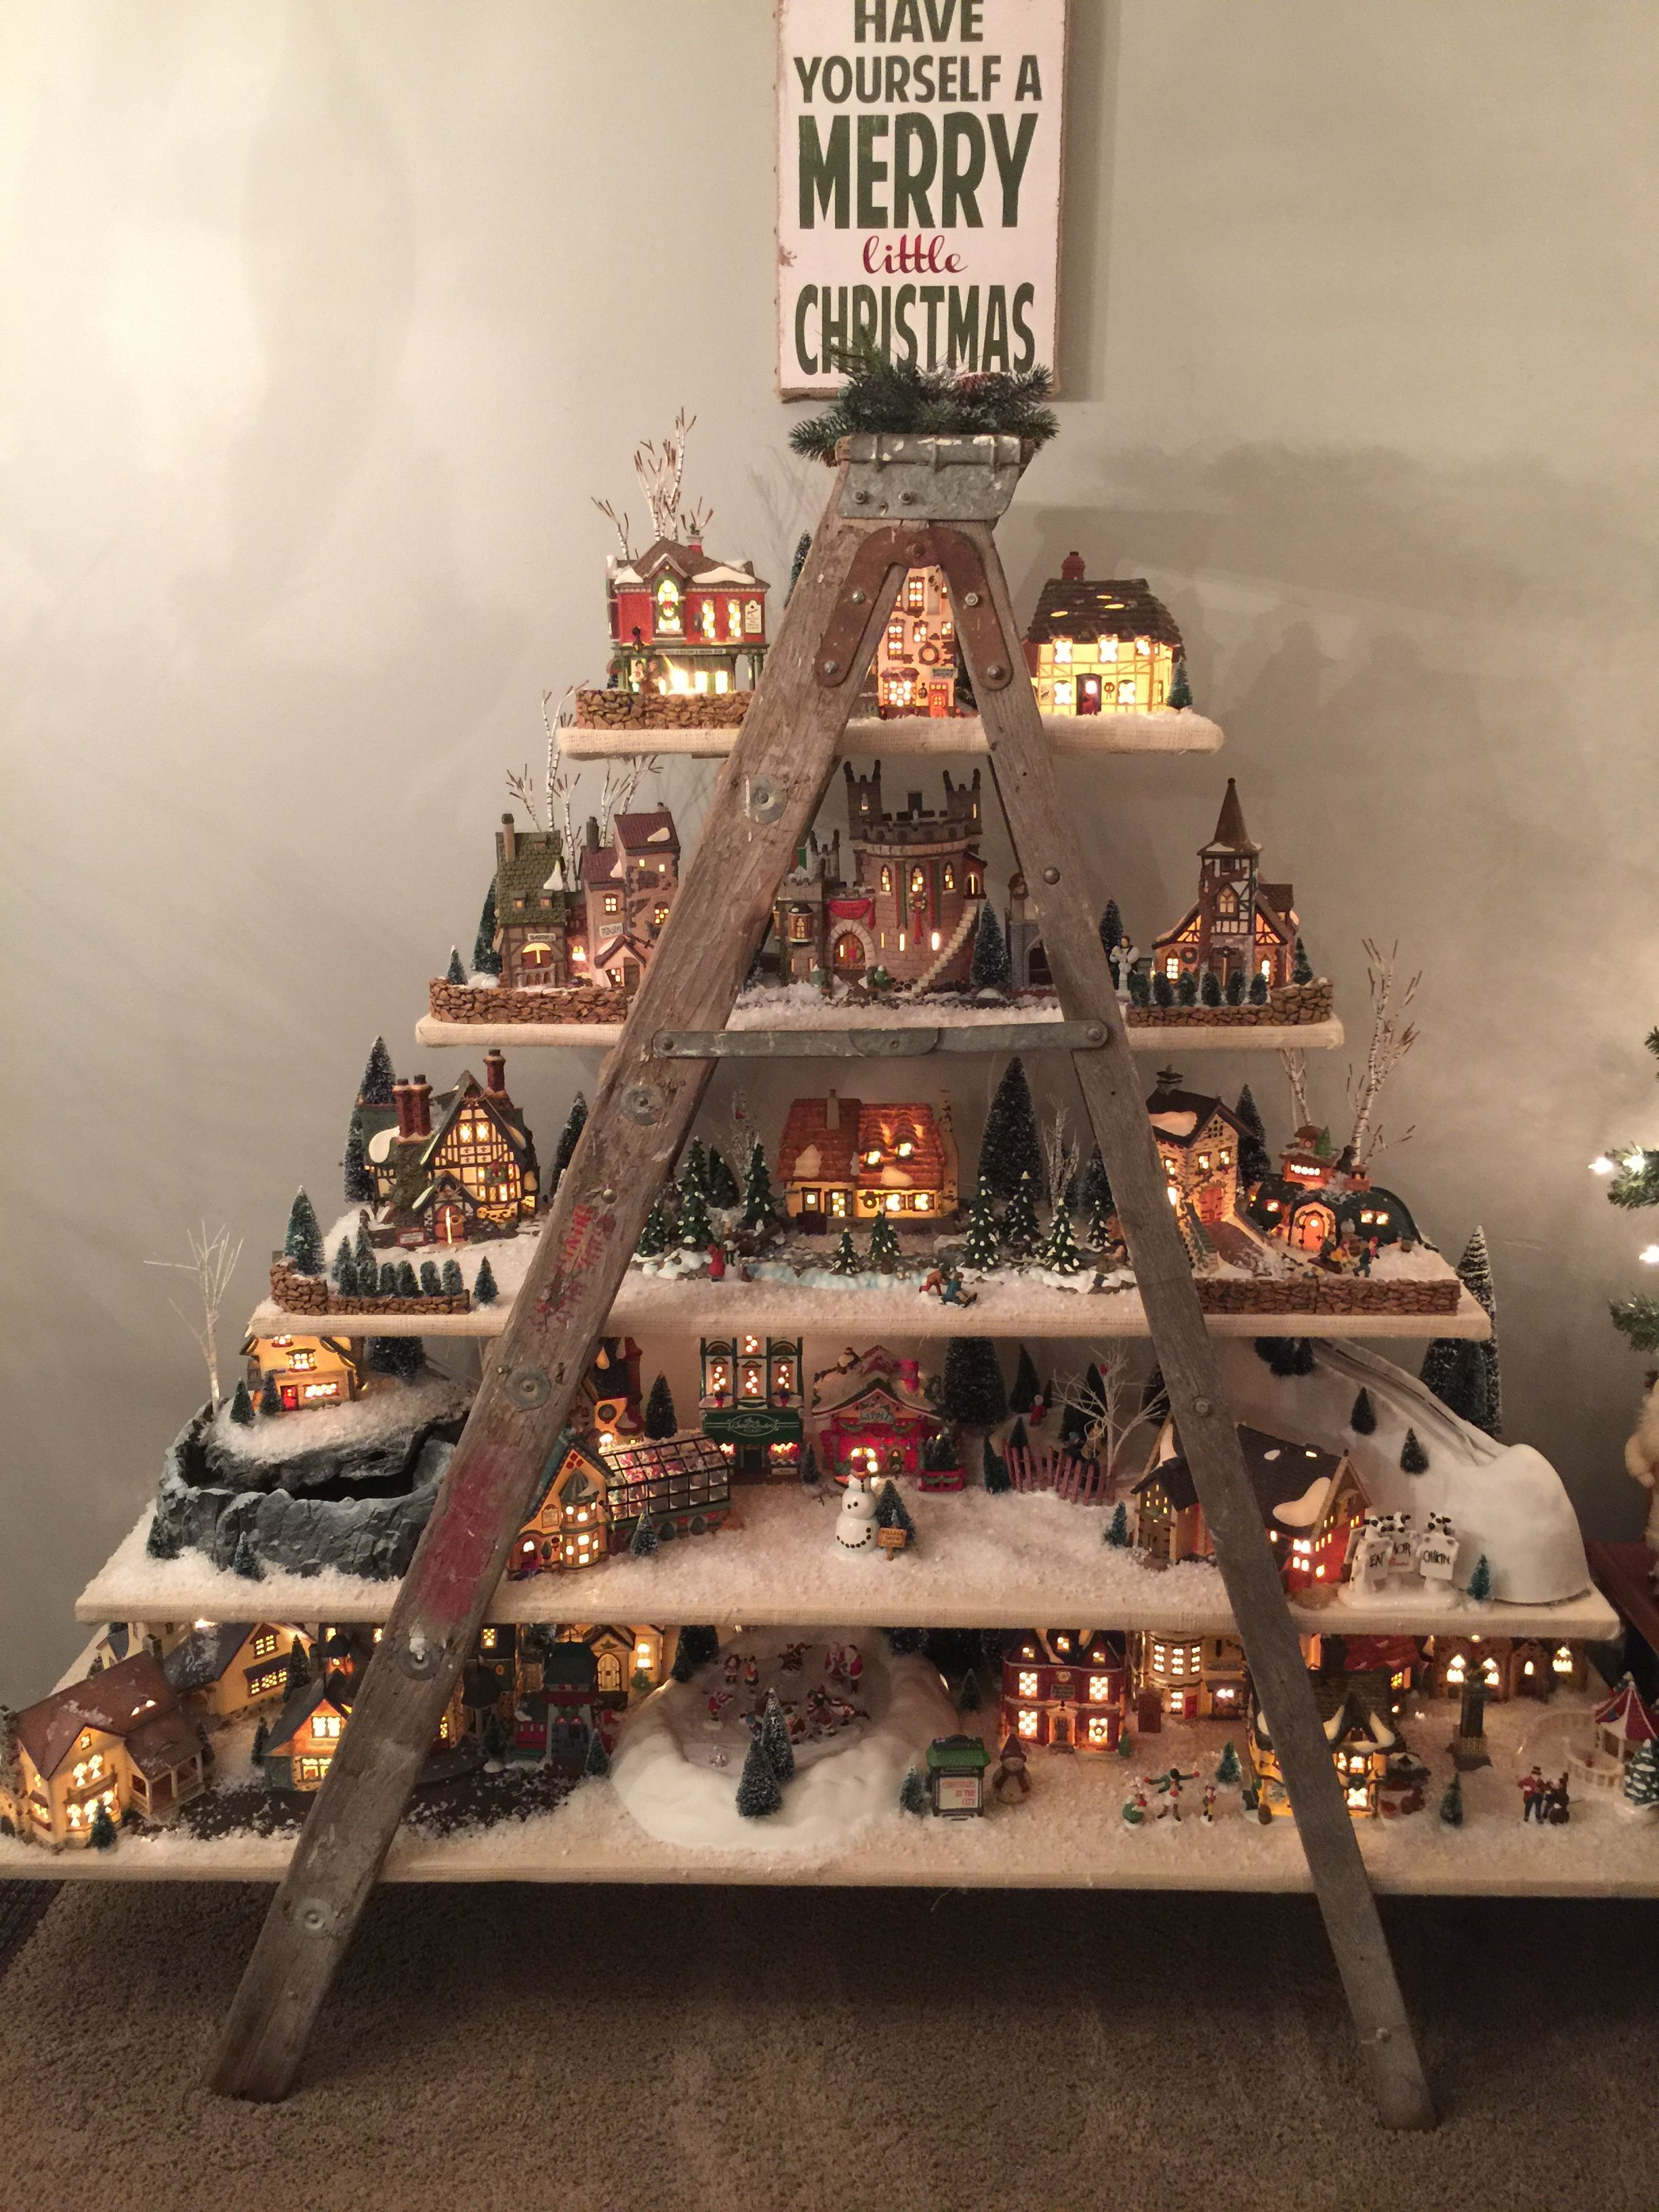 Dept 56 Christmas Village Ladder Display Underhillbilly